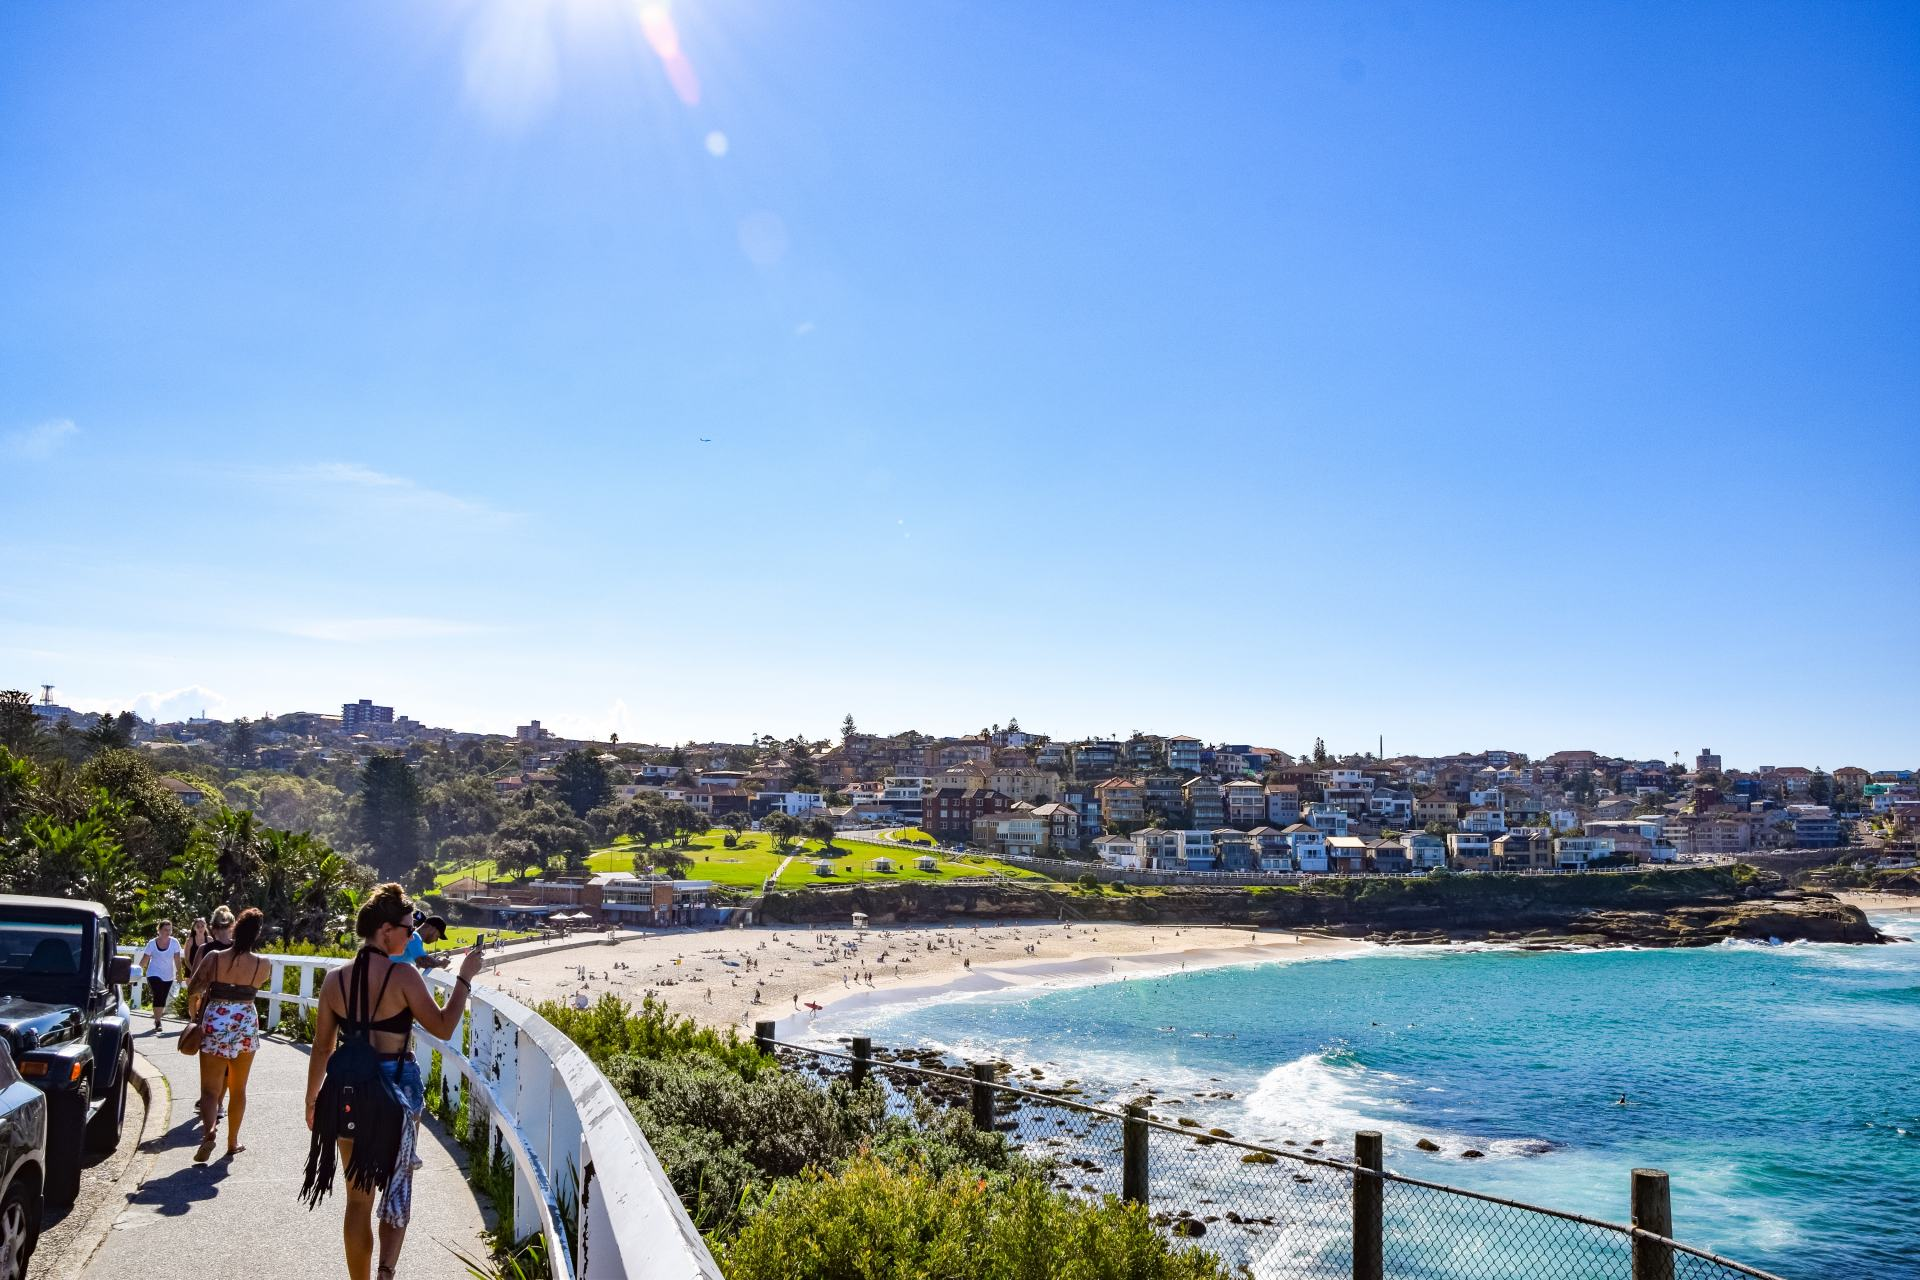 Discussion on this topic: Bondi to Bronte Coastal Walk, bondi-to-bronte-coastal-walk/